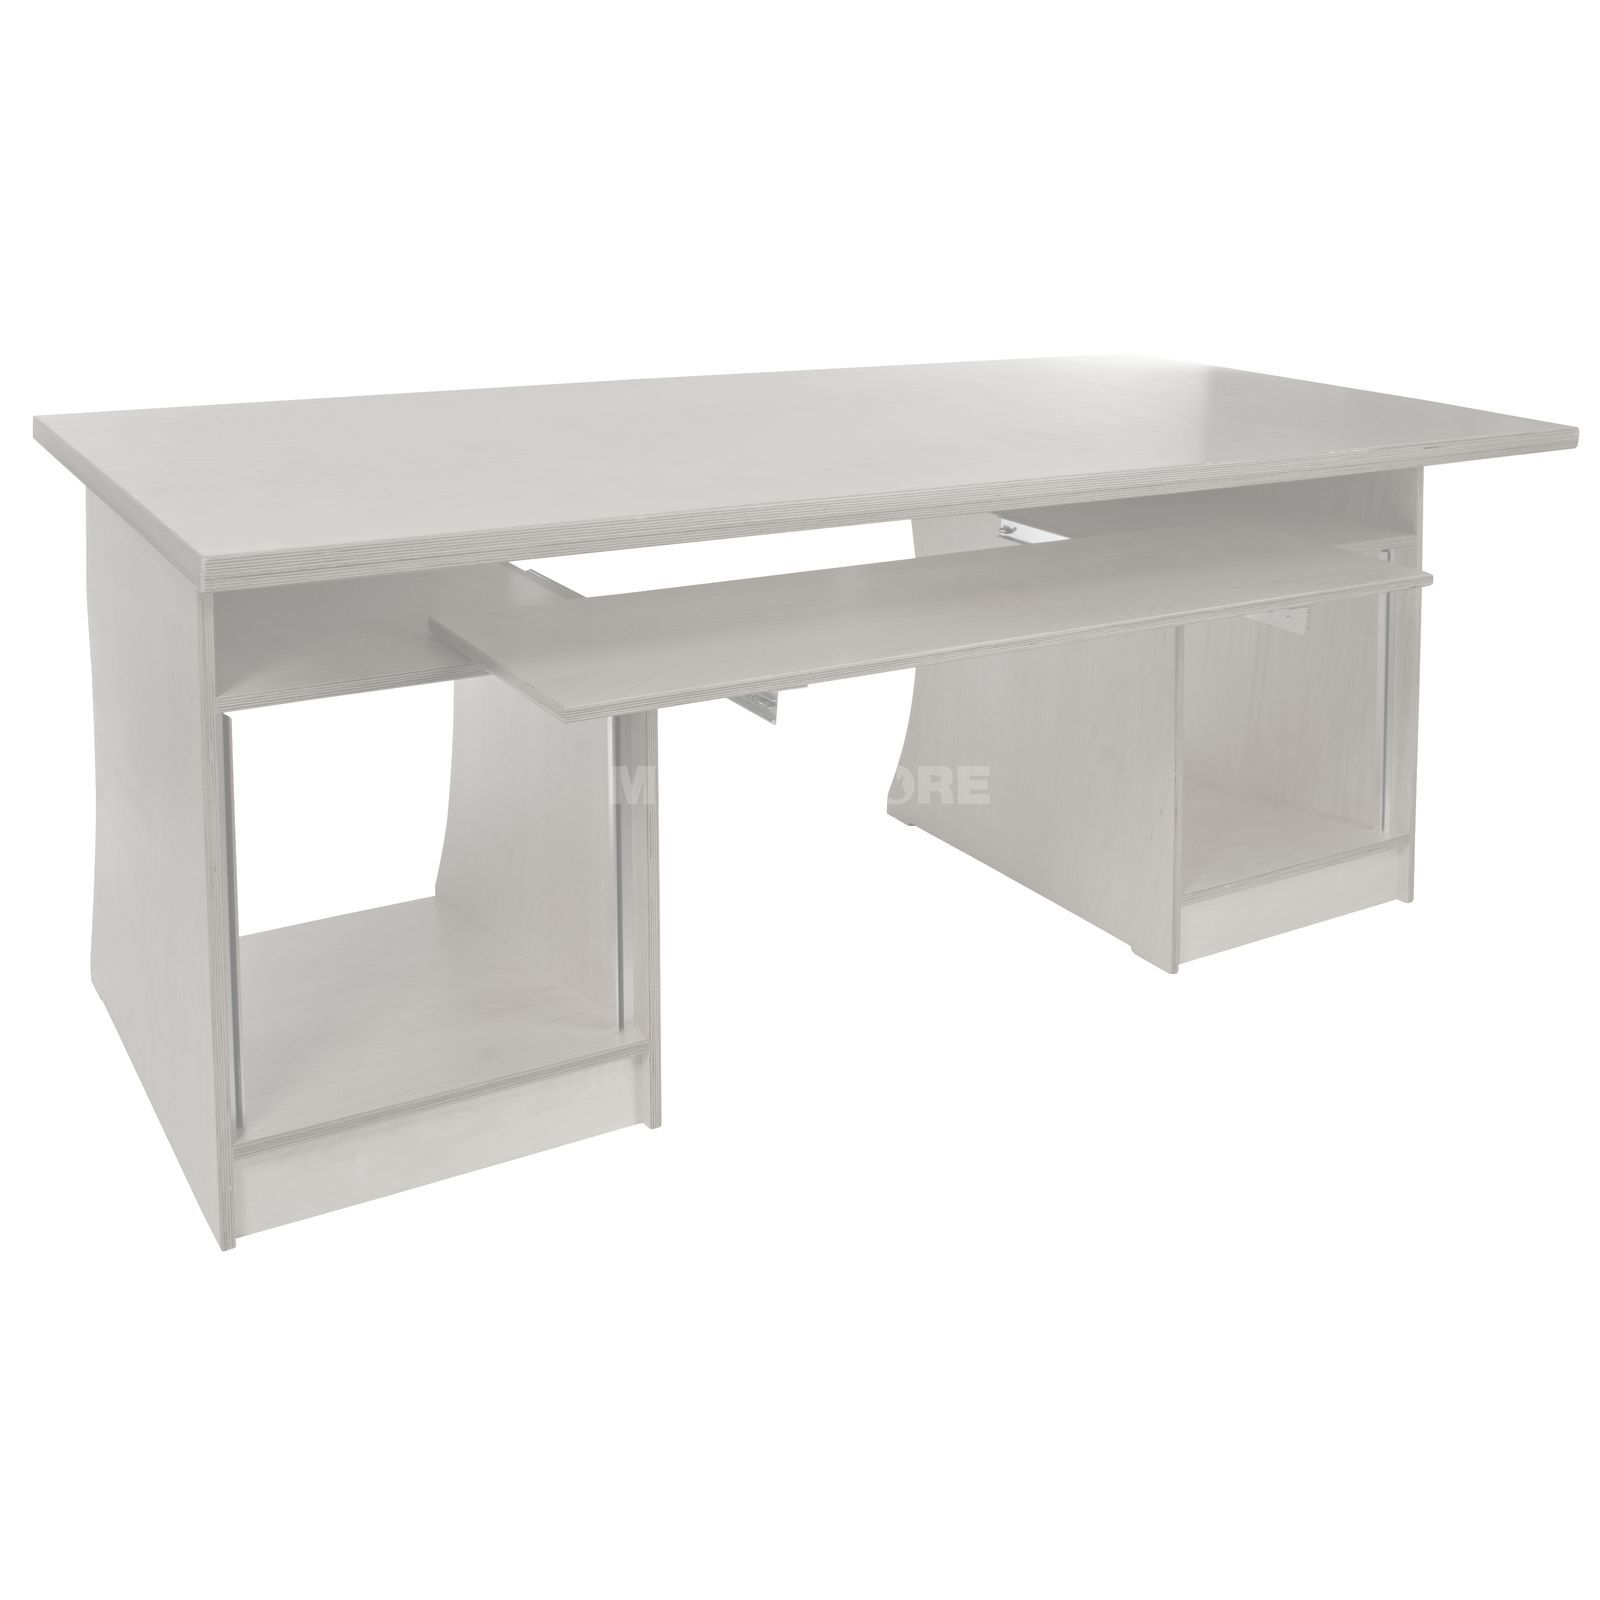 MUSIC STORE MAXXstation white lacquered 2x1m, Keyboard Shelf, 2x - 10HE-UB Produktbillede